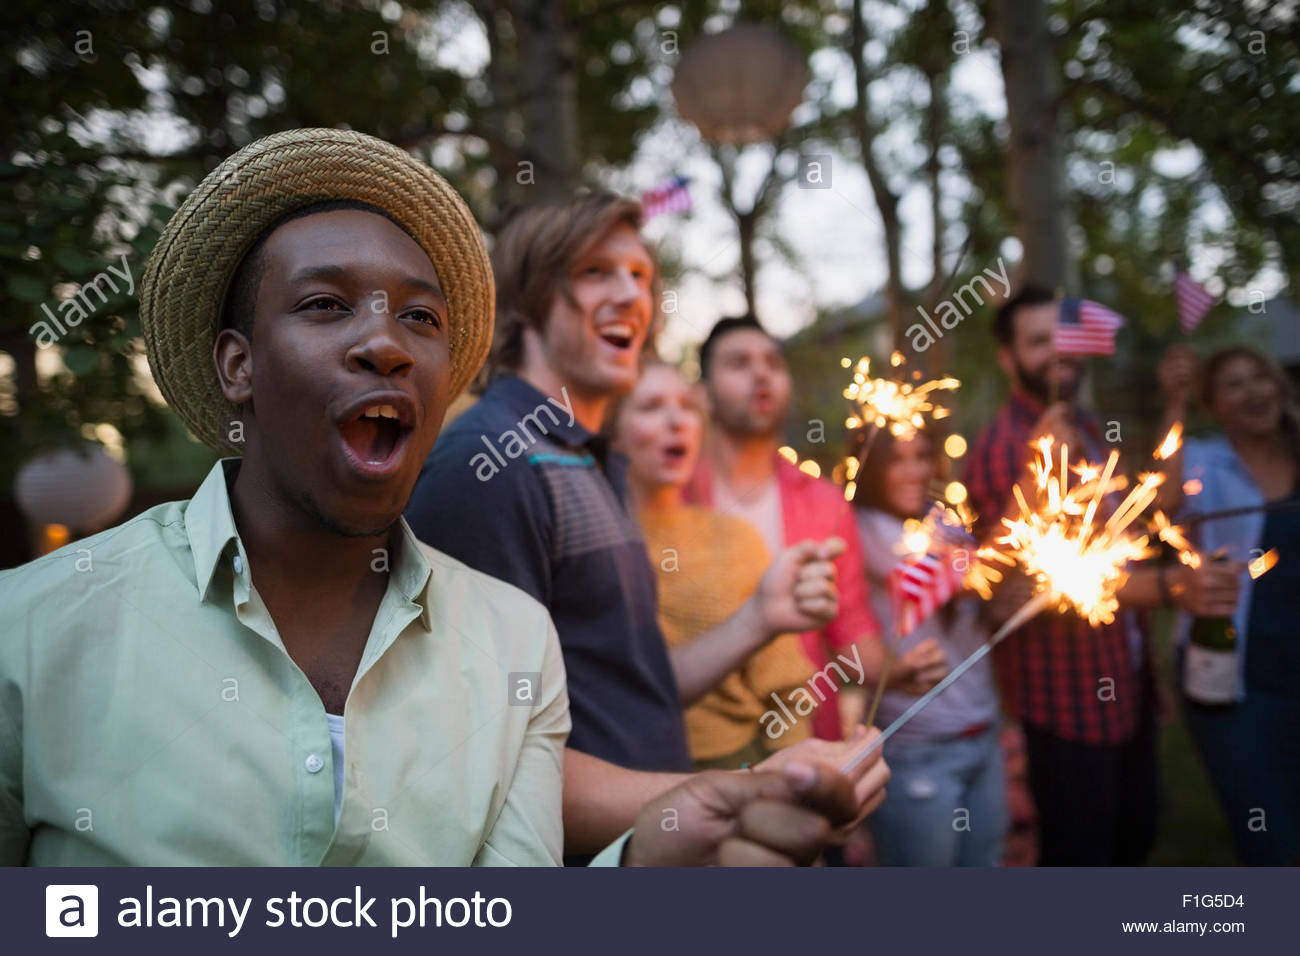 Friends with sparklers cheering 4th of July party - Stock Image